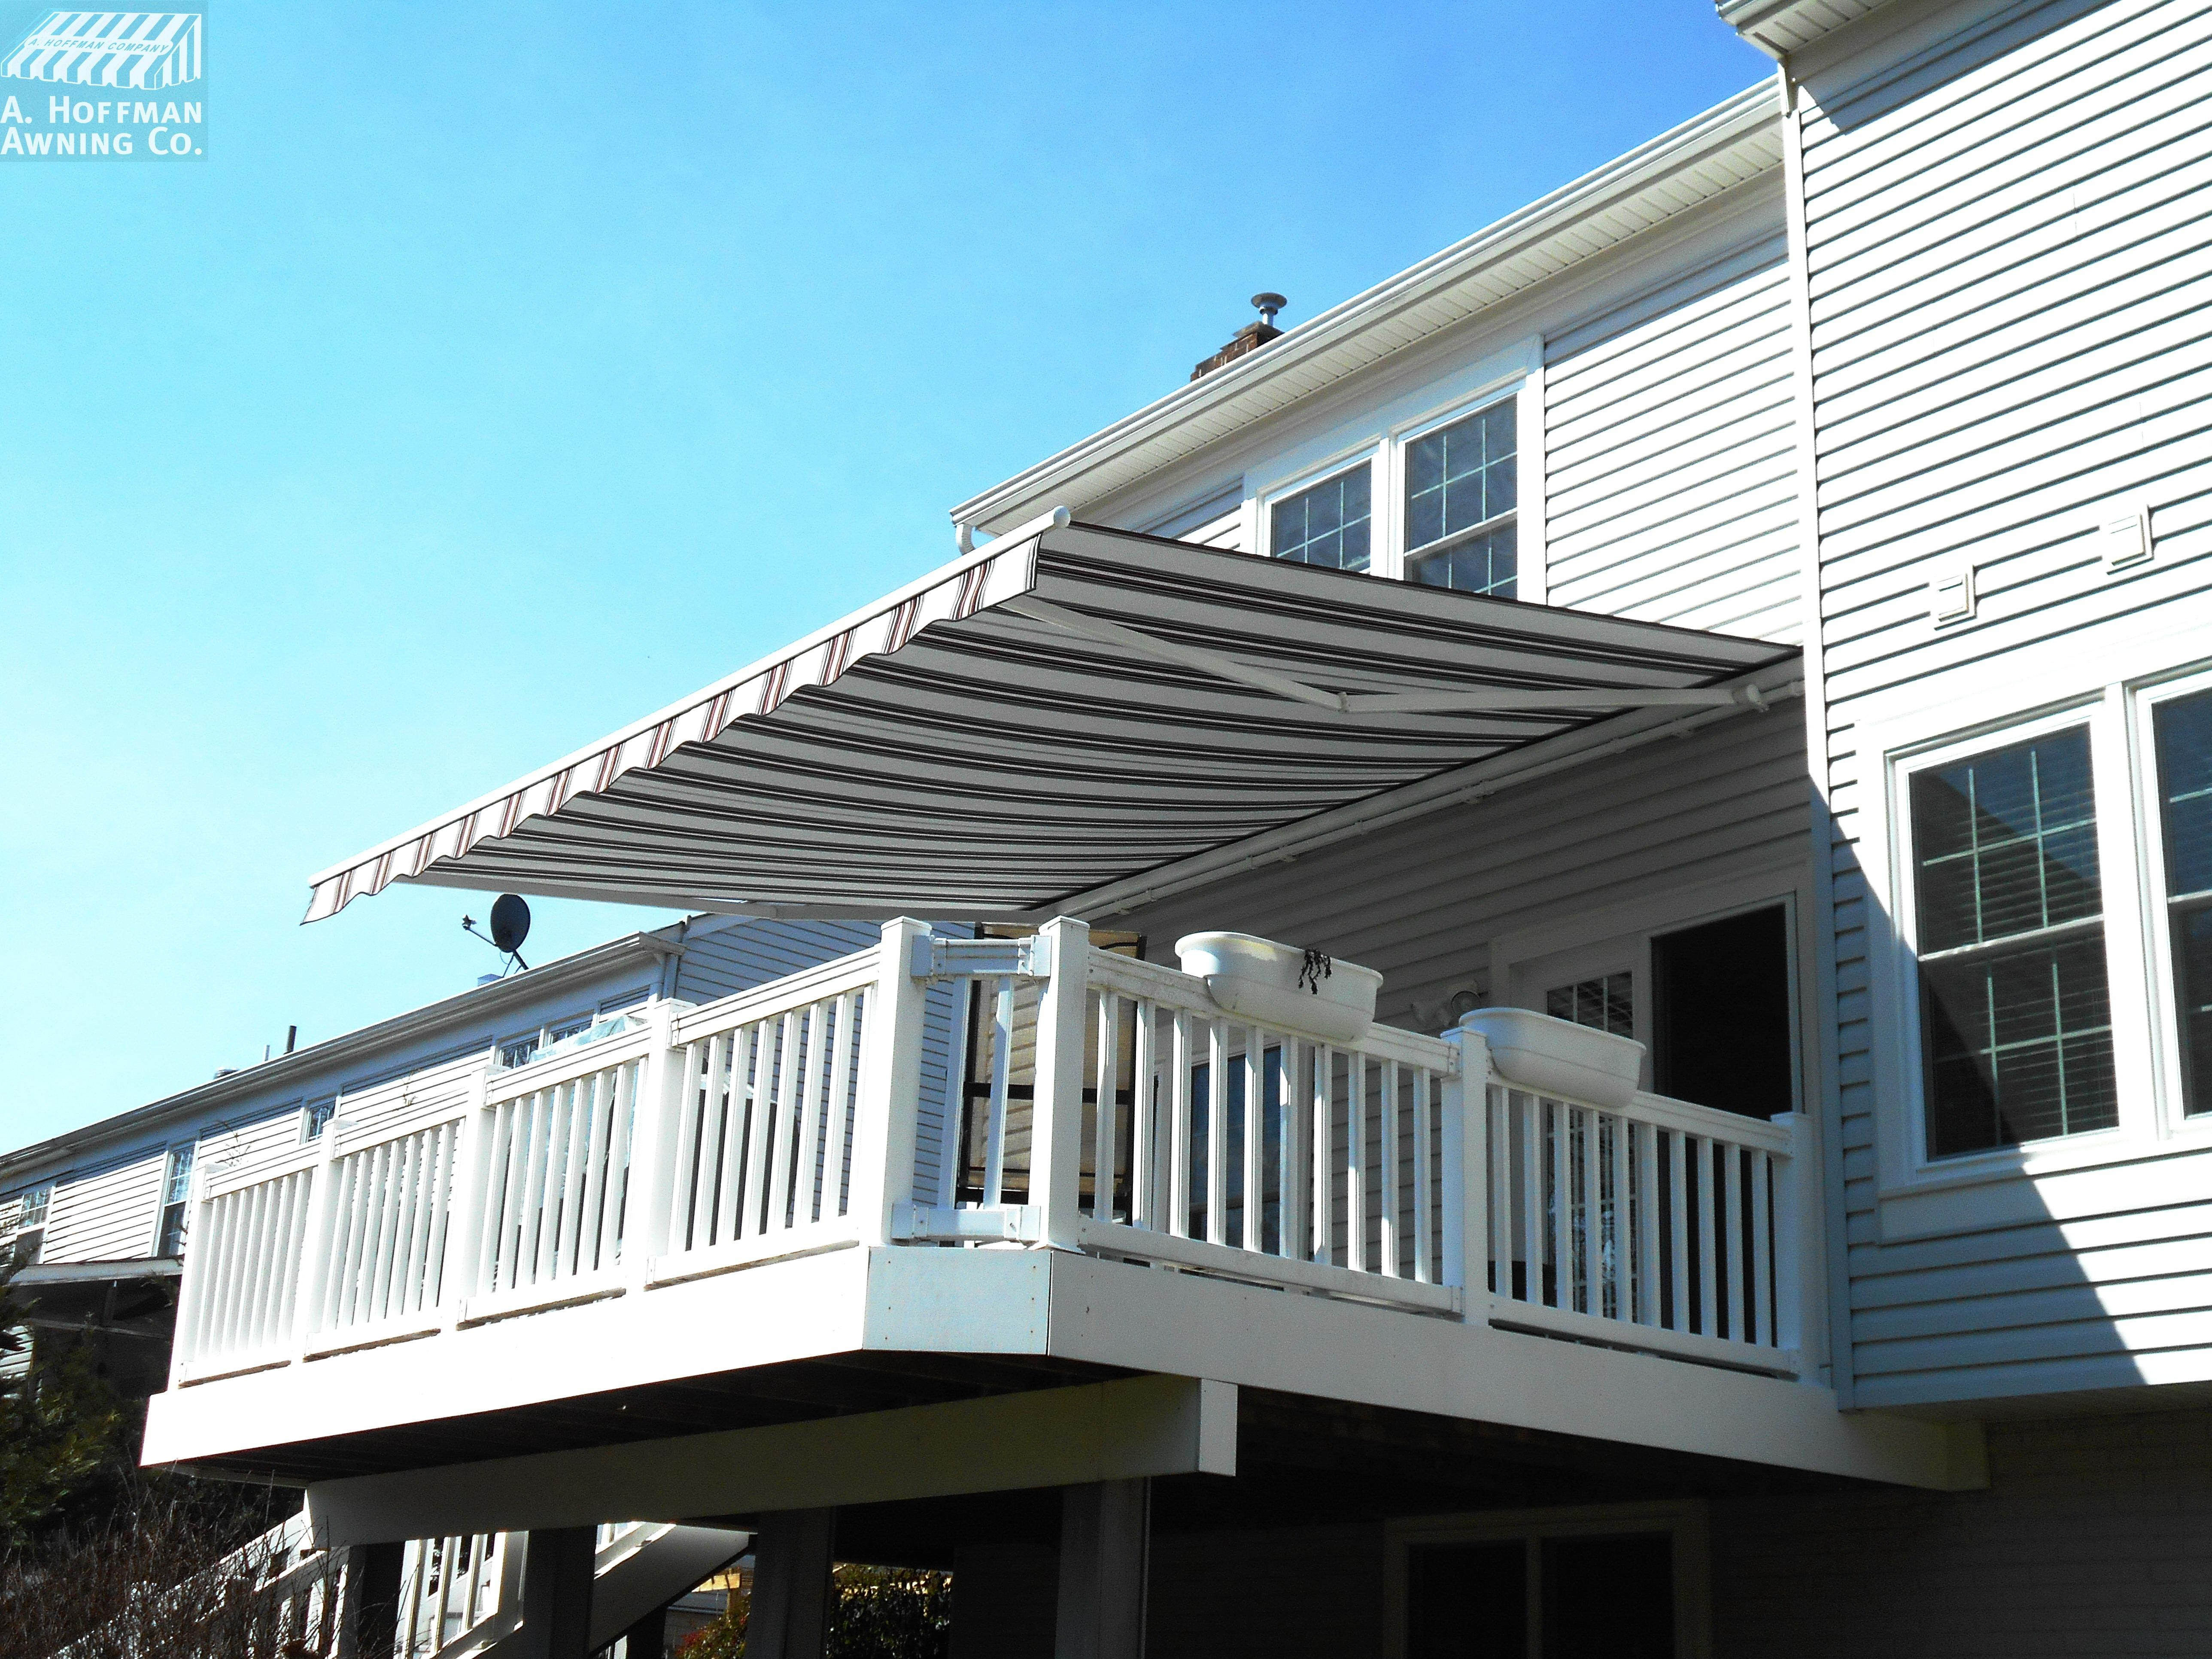 A Hoffman Awning Co Coupons Near Me In Baltimore 8coupons